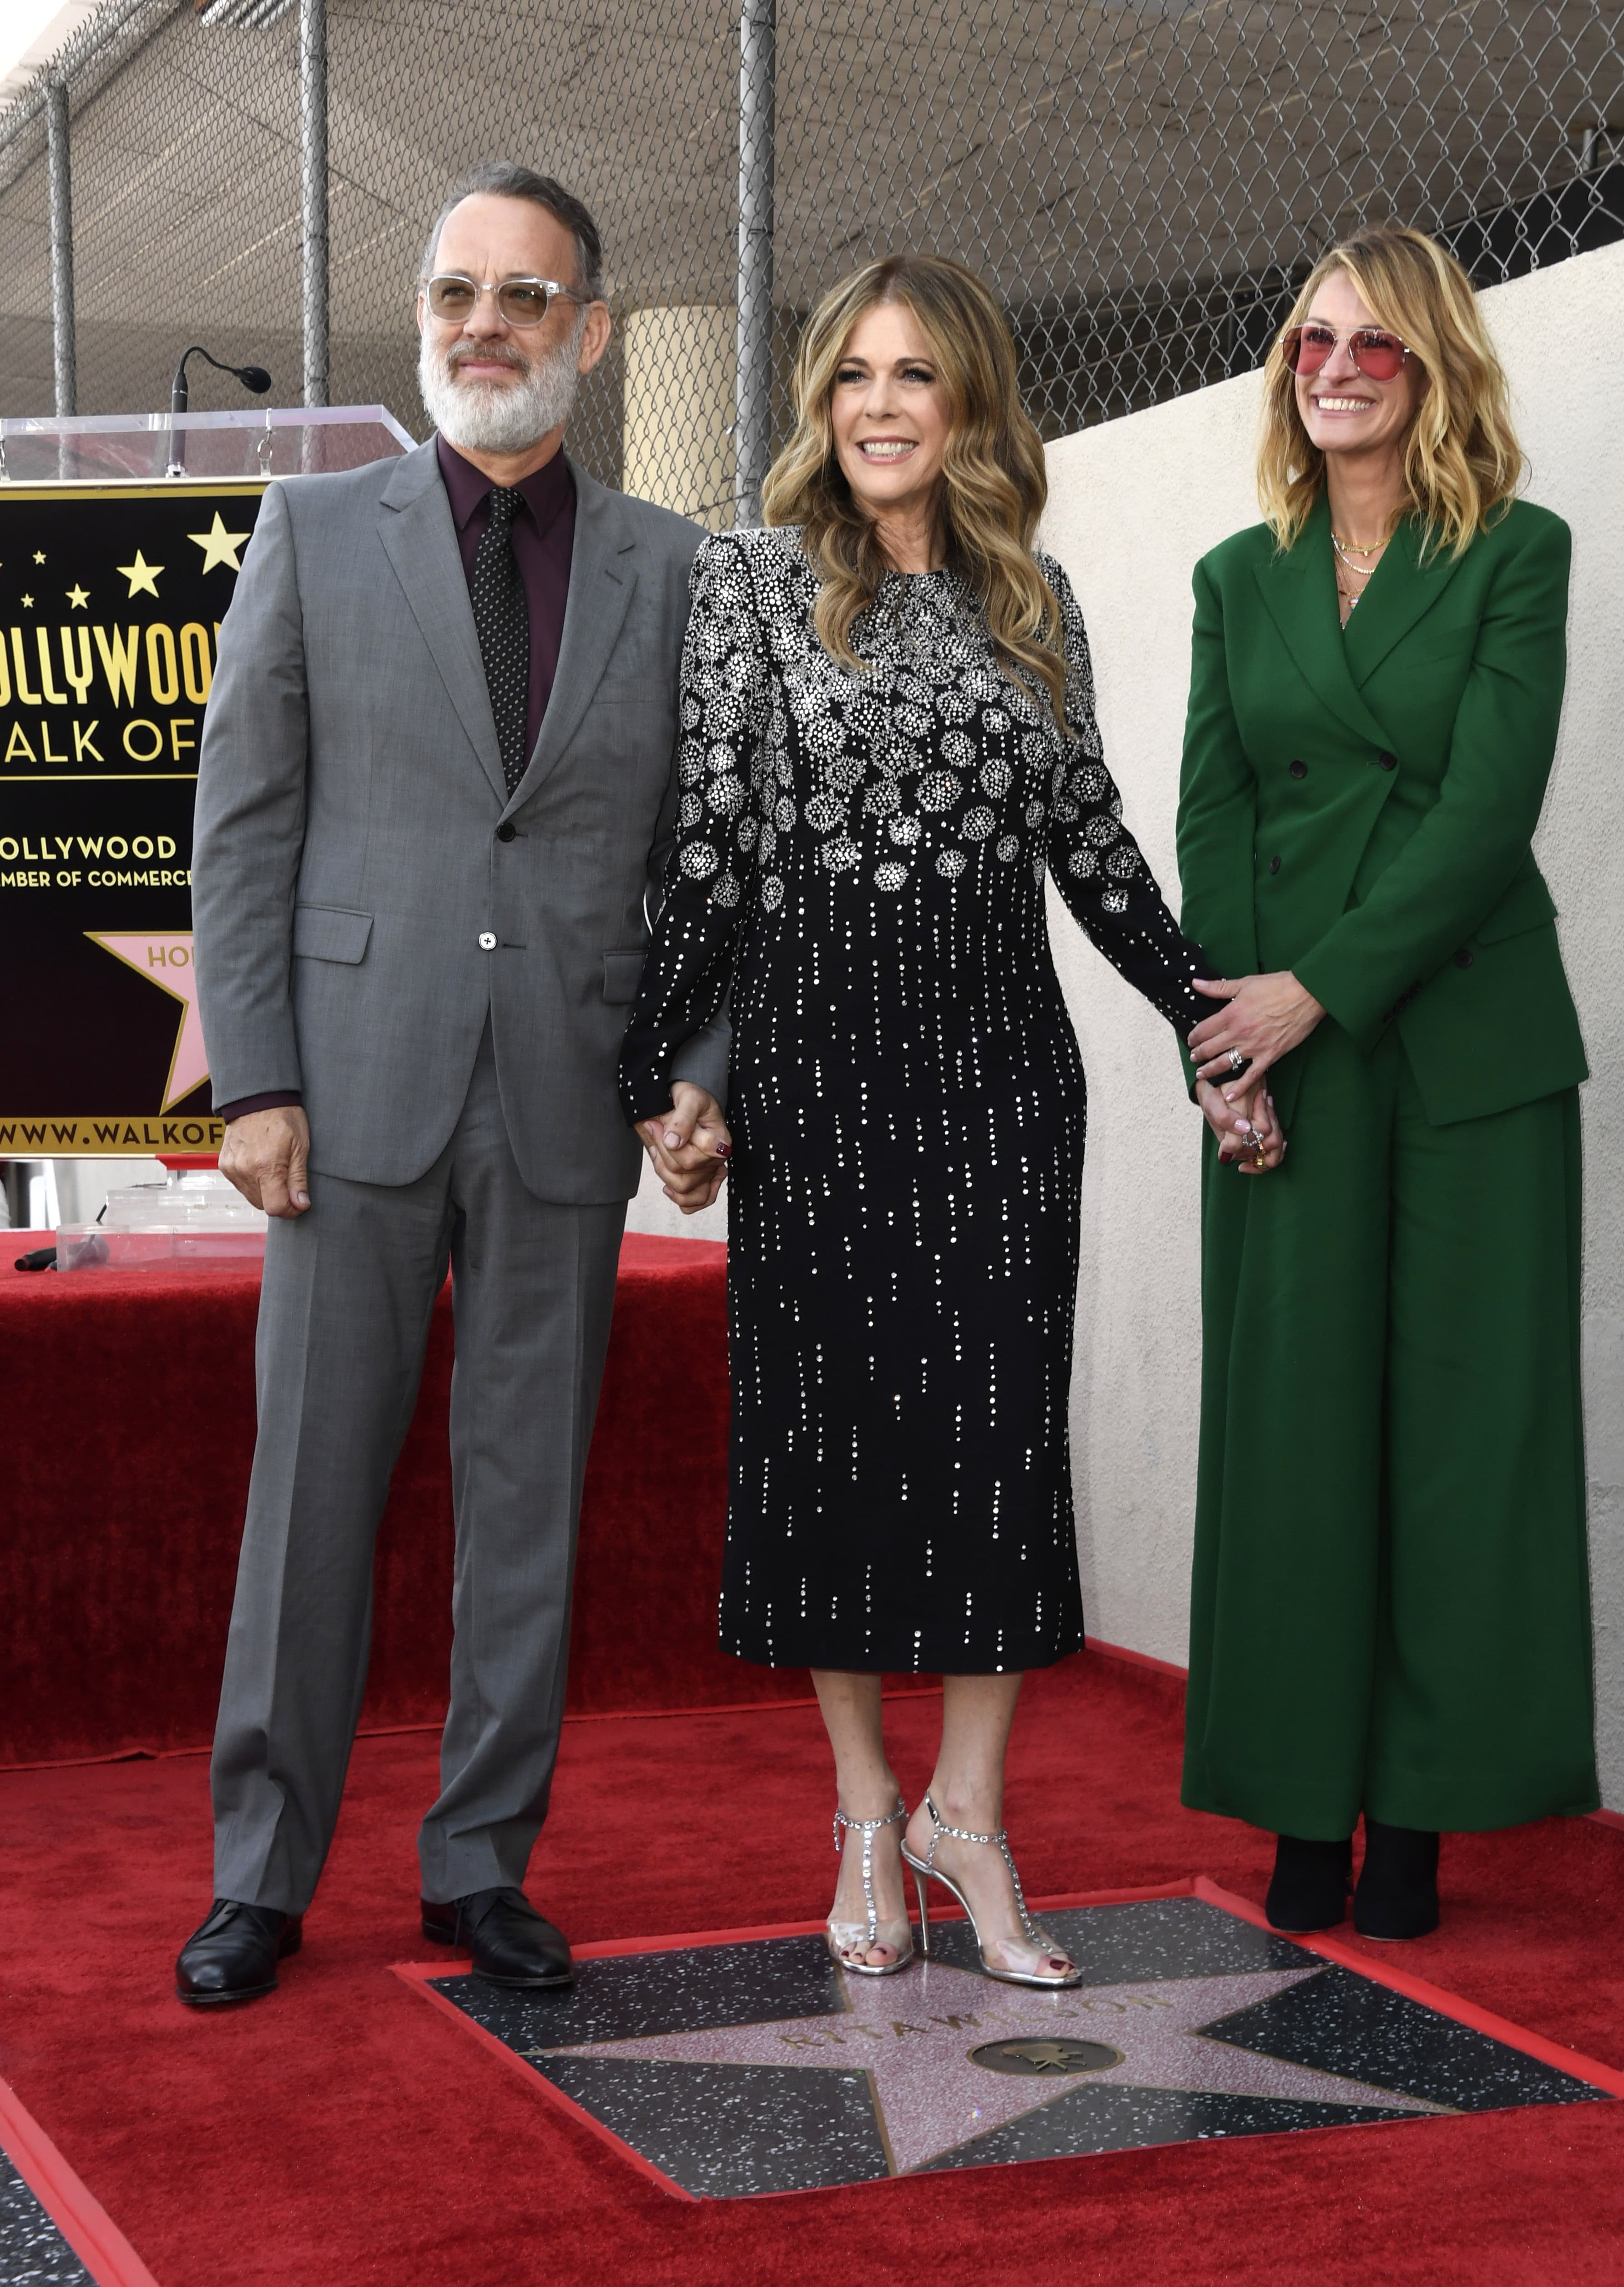 HOLLYWOOD, CALIFORNIA - MARCH 29: (L-R): Tom Hanks, wife Rita Wilson, and Julia Roberts stand on Wilson's newly unveiled star after she was honored on the Hollywood Walk of Fame in Hollywood,, California on March 29, 2019.